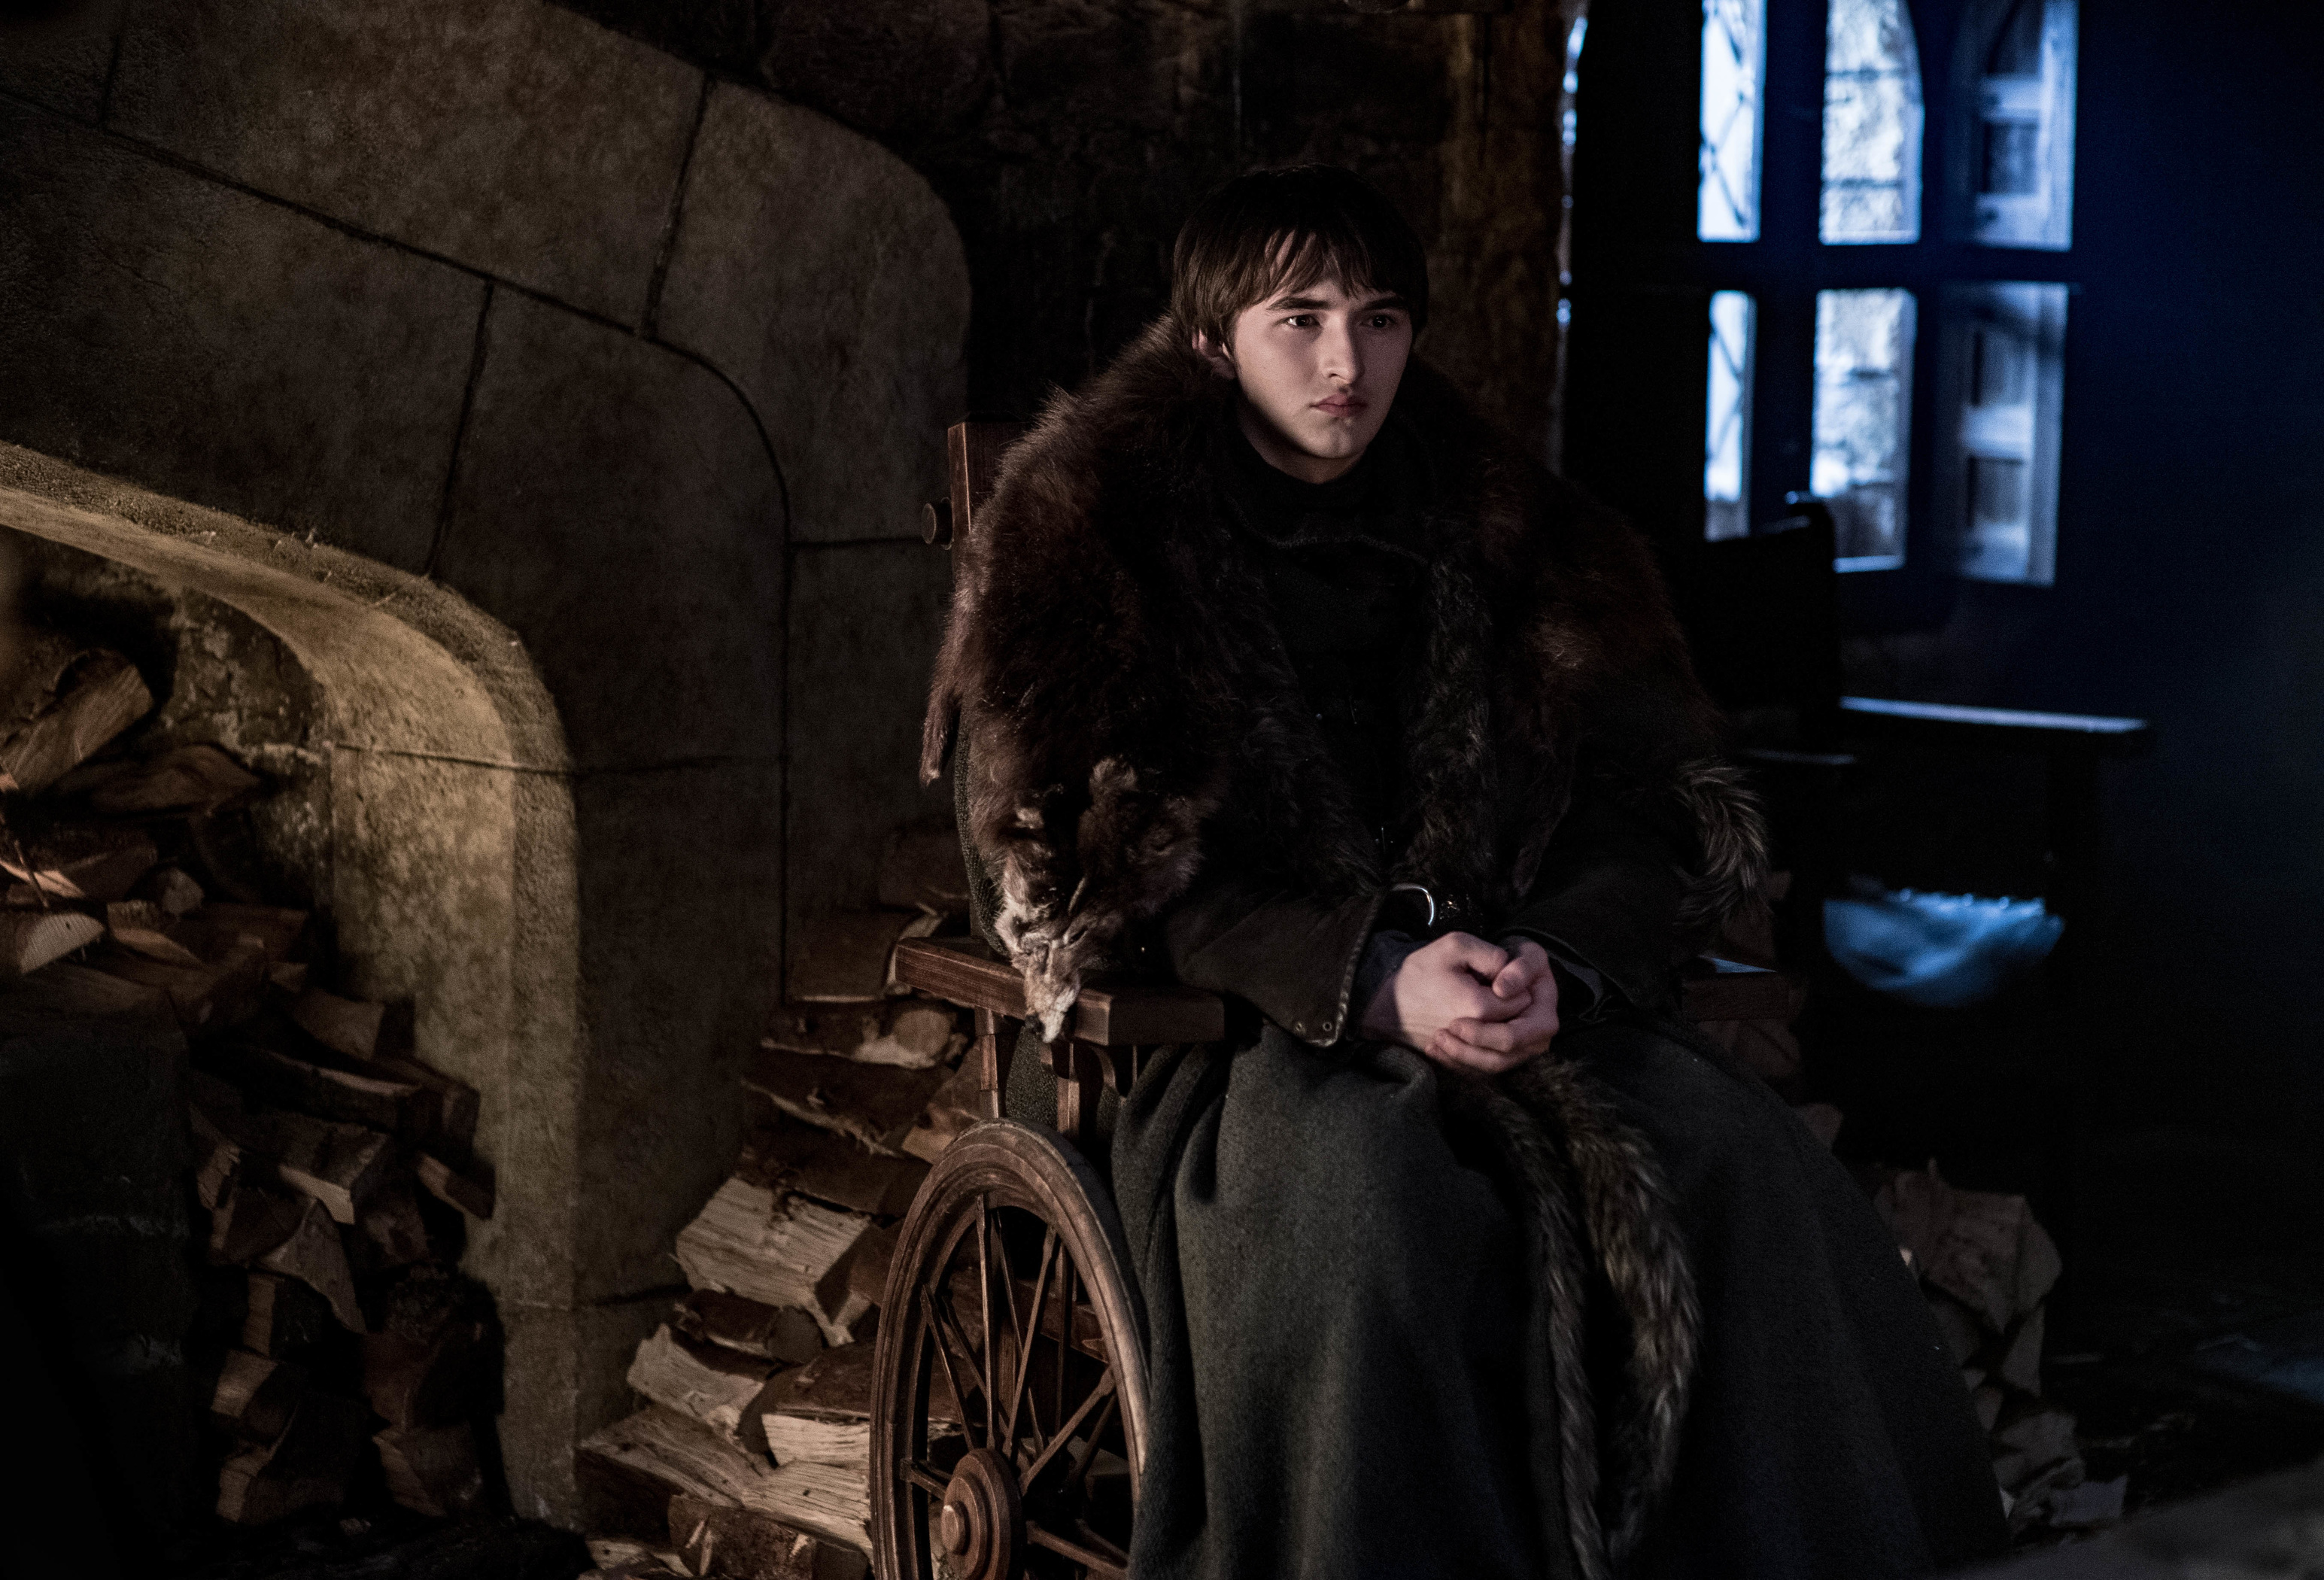 Isaac Hempstead Wright as Bran Stark.